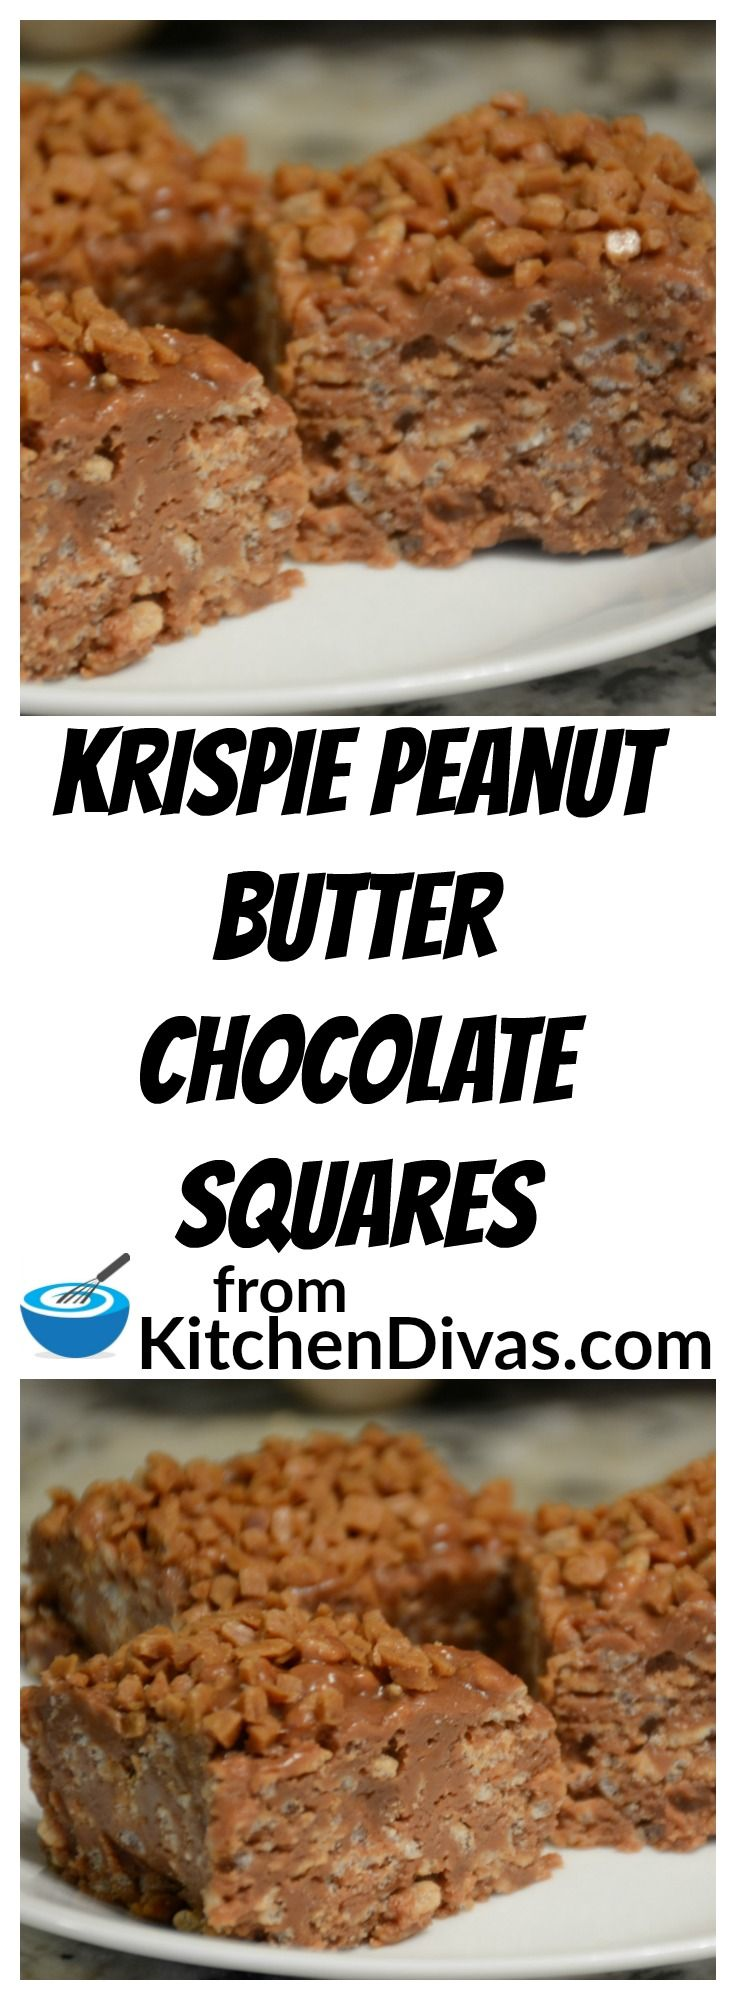 If you love chocolate, peanut butter and Rice Krispies you will love Krispie Peanut Butter Chocolate Squares! They are totally delicious!